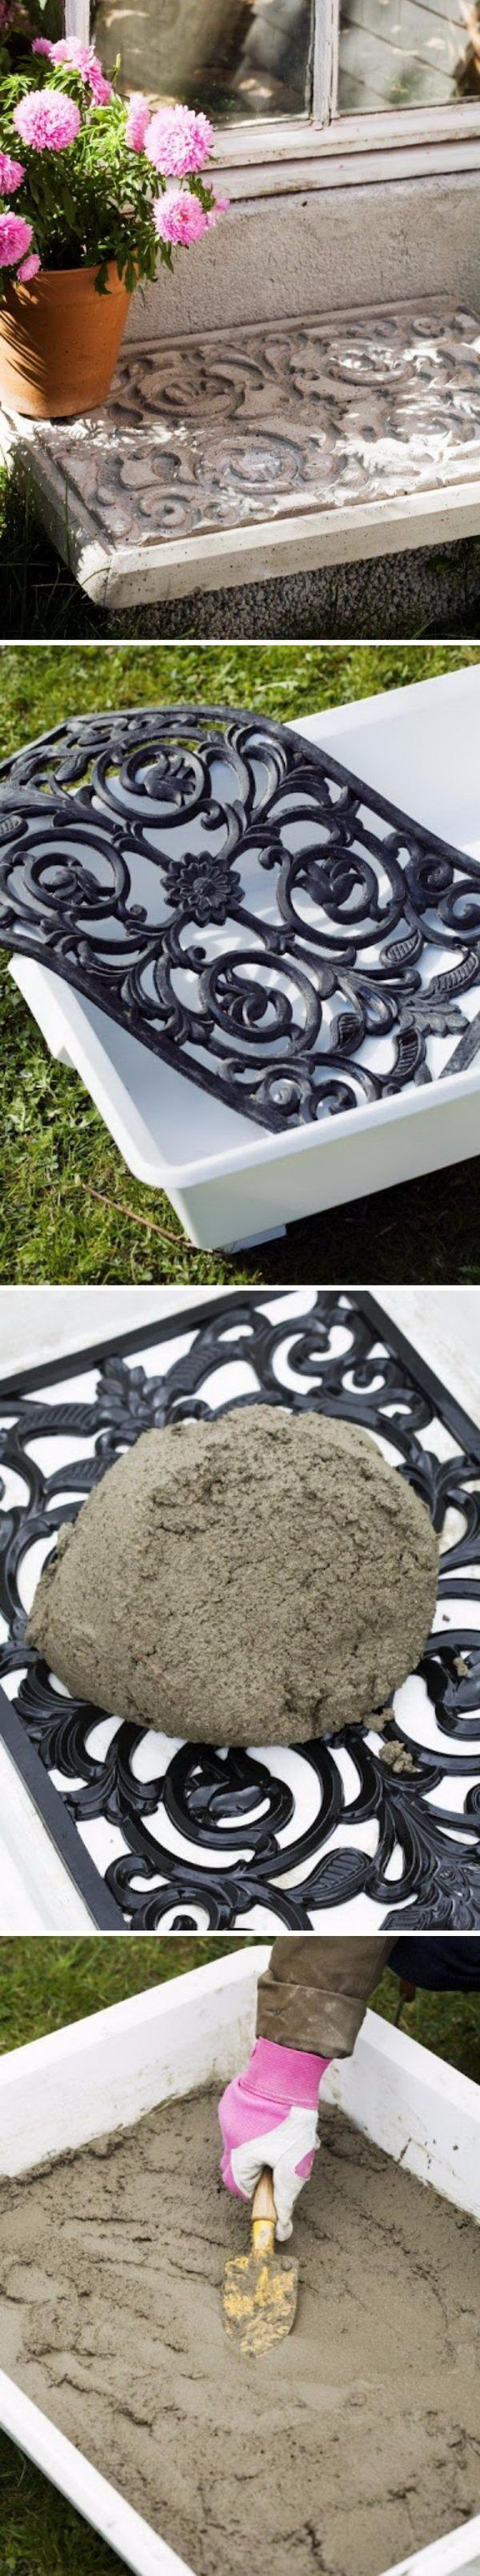 Make a sturdy and decorative concrete slab using a rubber door mat. Mix the concrete into a bucket. Brush the inside of the plastic bin and the entire mat with cooking oil. Put the mat in the bottom of the bin. Pour the concrete into the bin so that it completely covers the mat, the thickness should be about 5 cms, let dry for a day out of the sun, mist occasionally, then unmold.